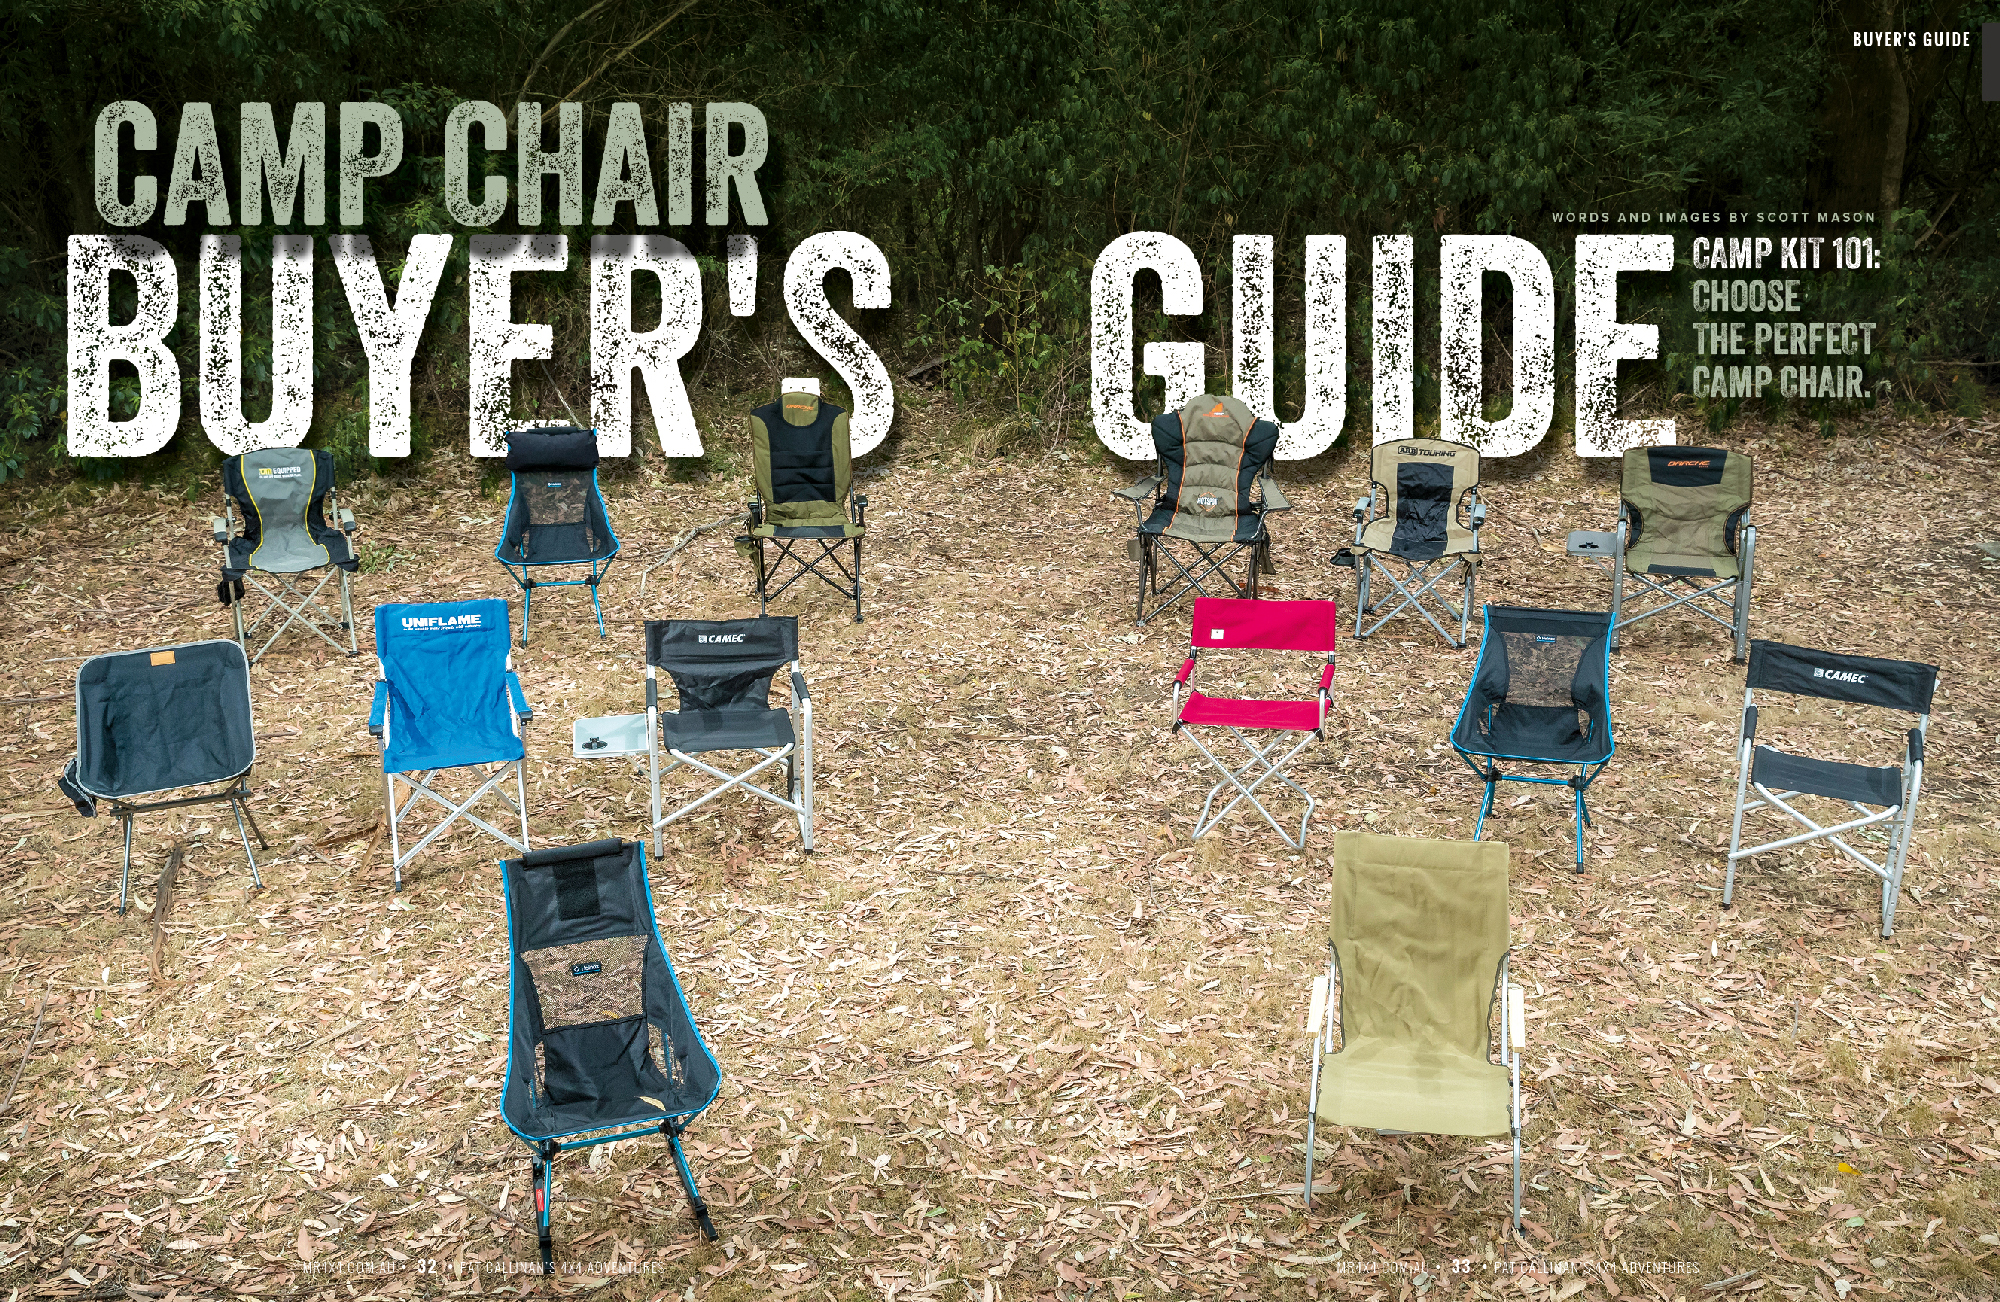 The best camp chairs on the market – Bar none!